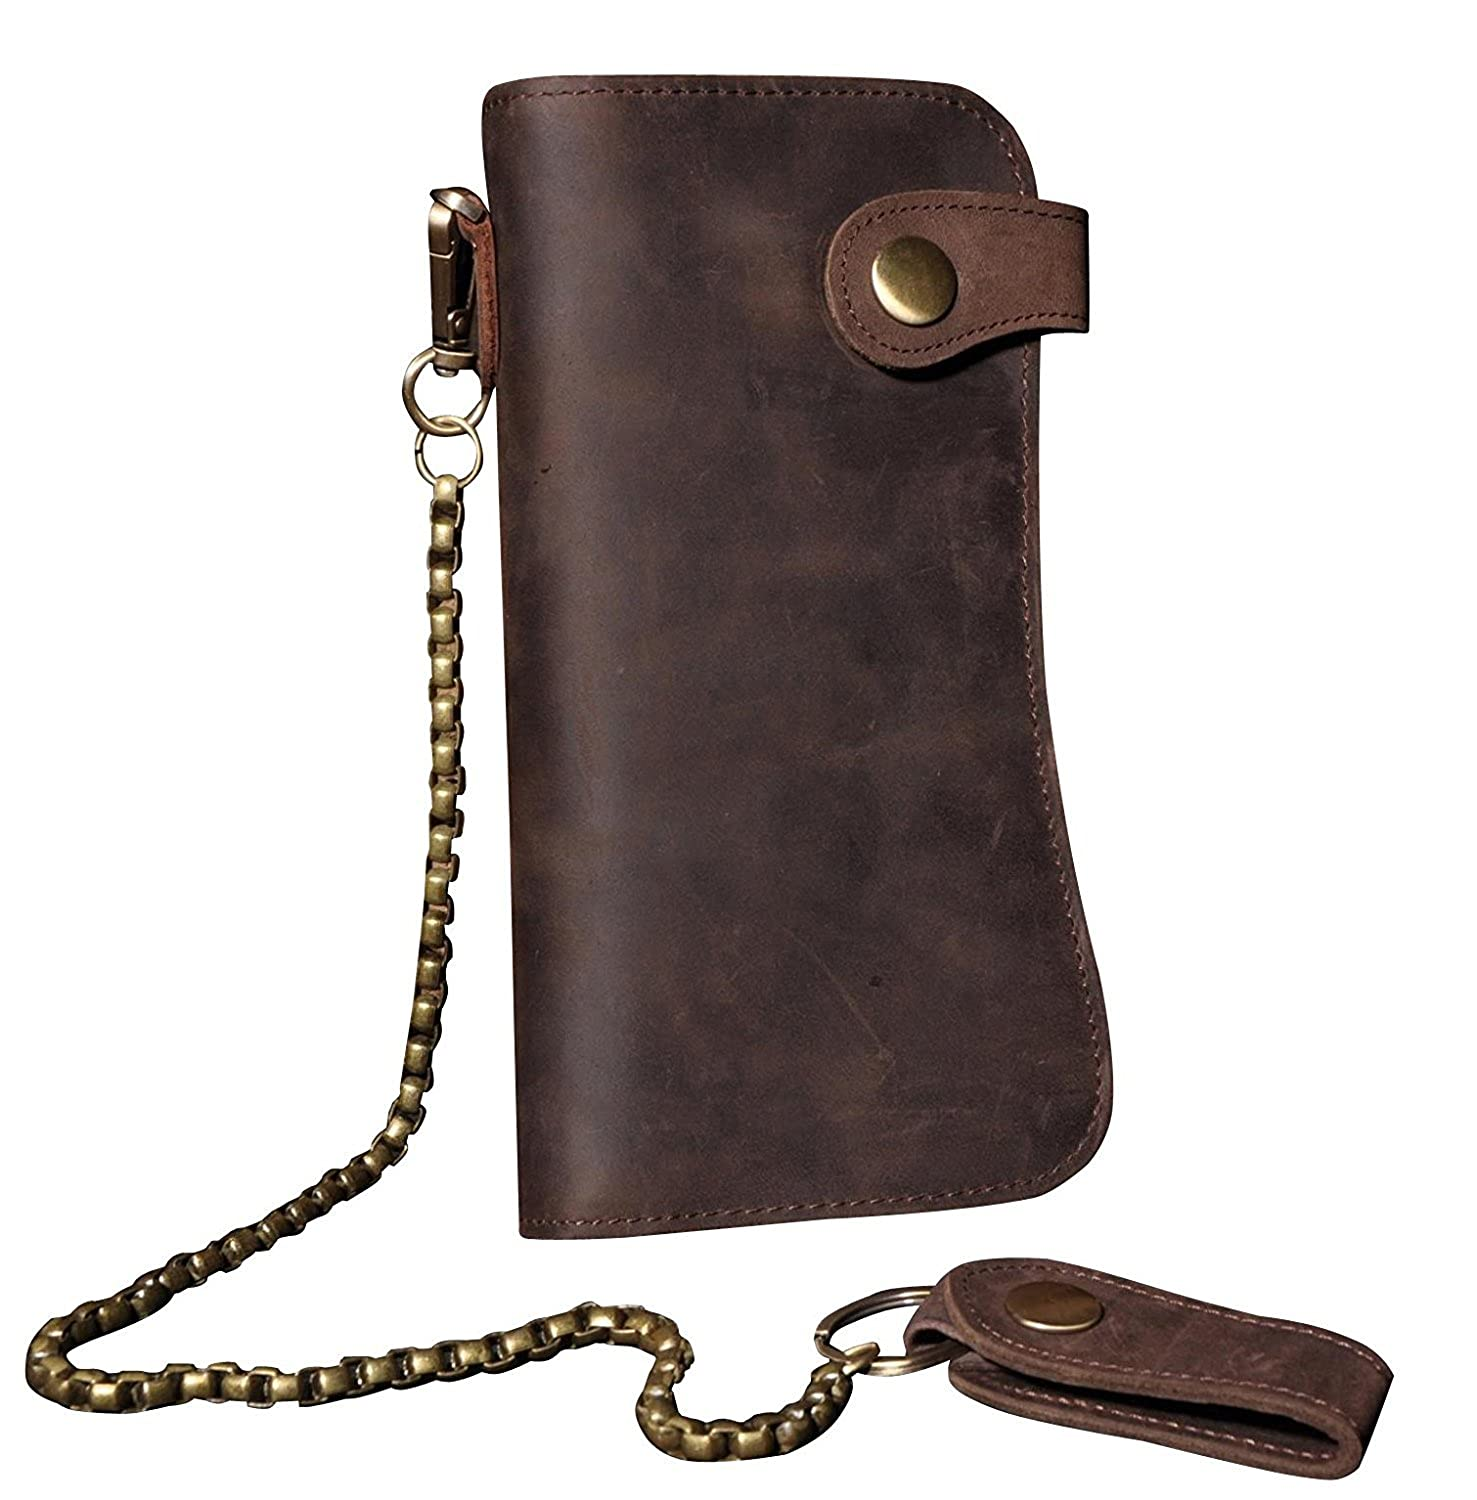 670a29b75009 The American Outdoorsman Woven Leather Mens Wallet Herren-Accessoires